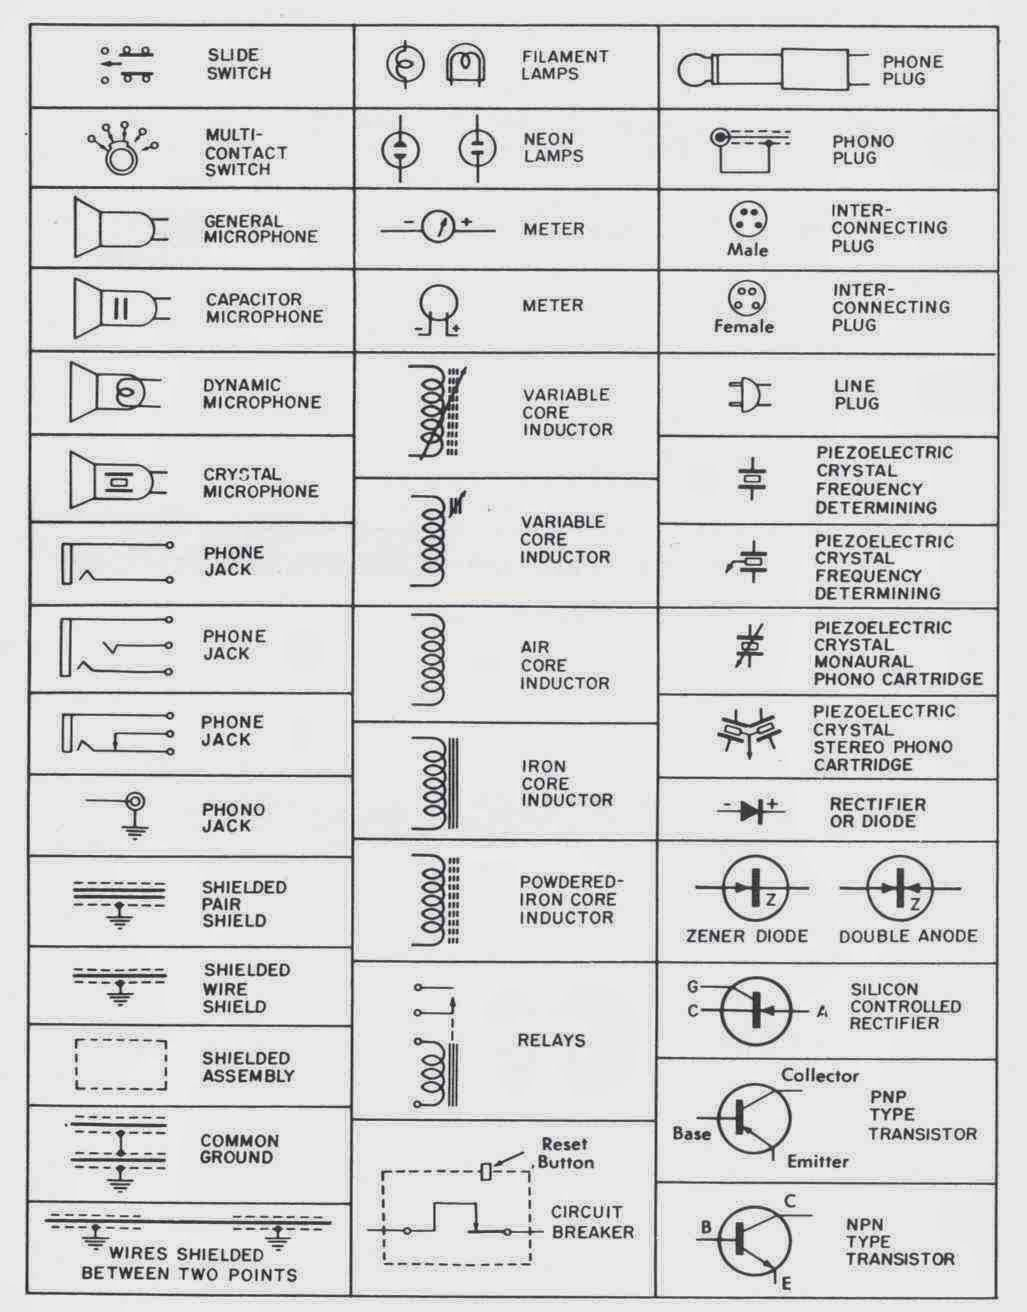 Basic Wiring Diagram Symbol